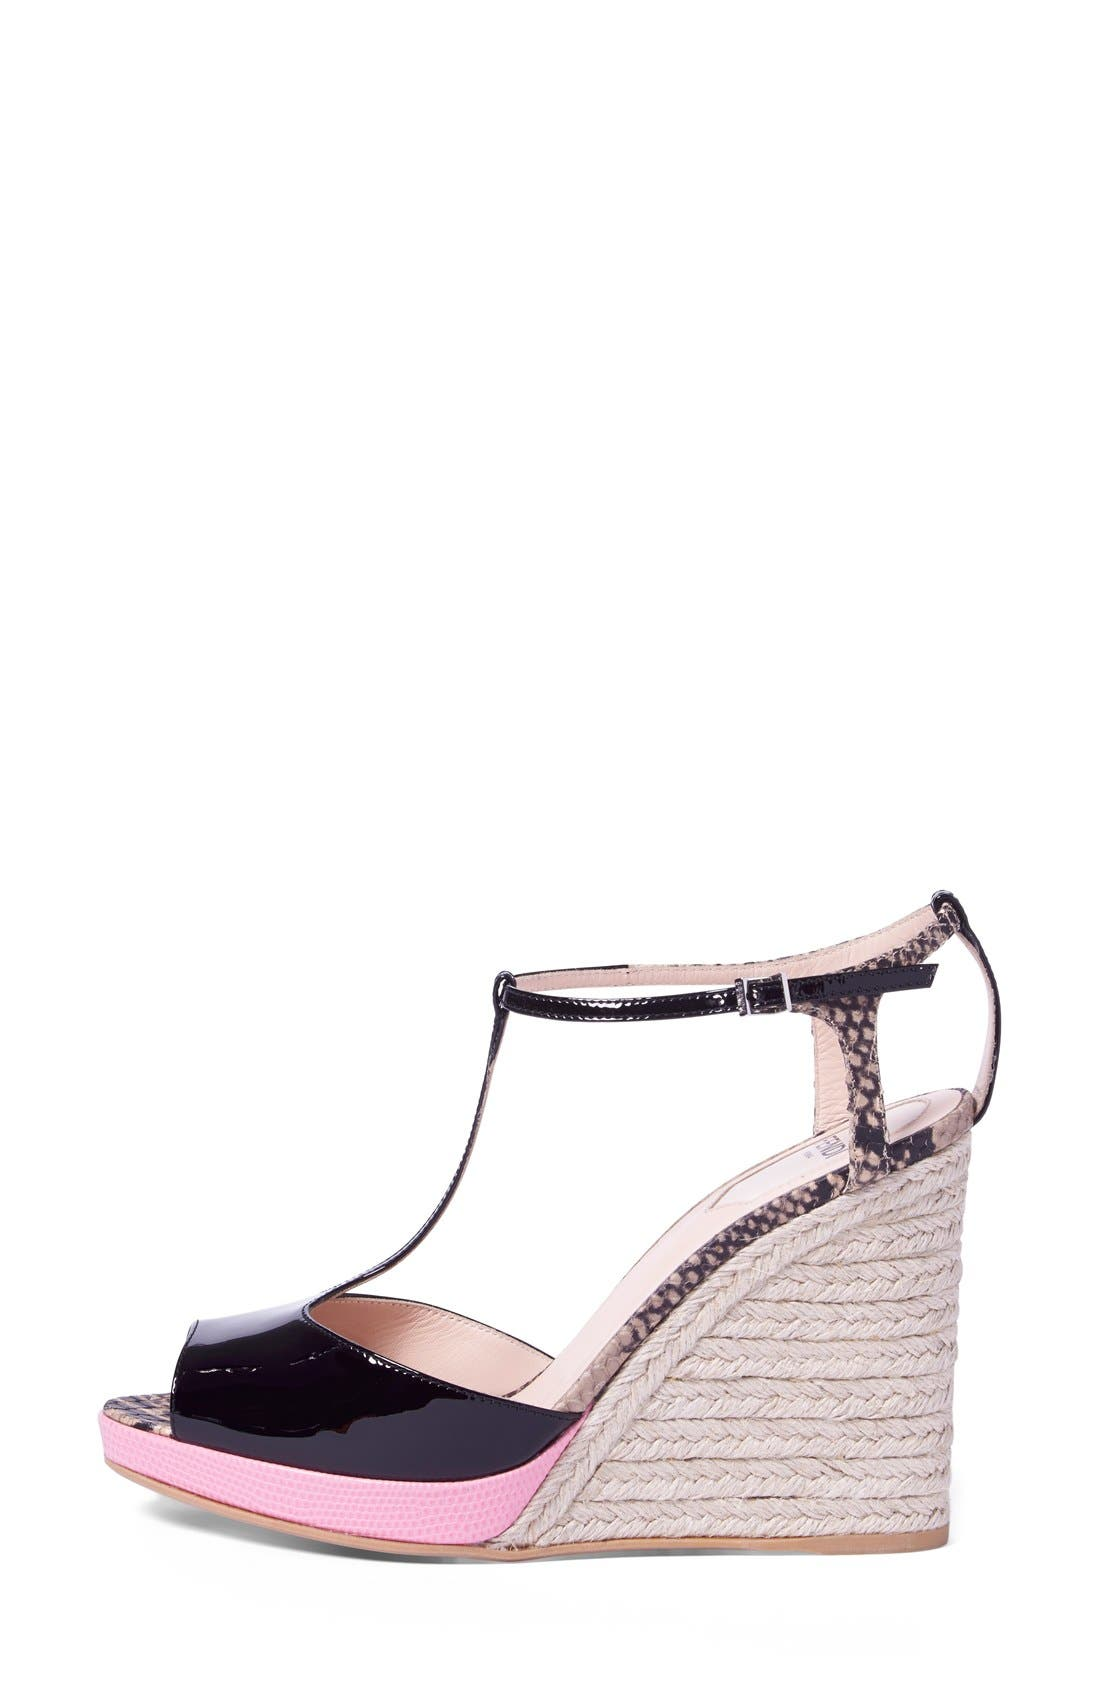 'Elodie' T-Strap Wedge Sandal,                             Alternate thumbnail 2, color,                             002